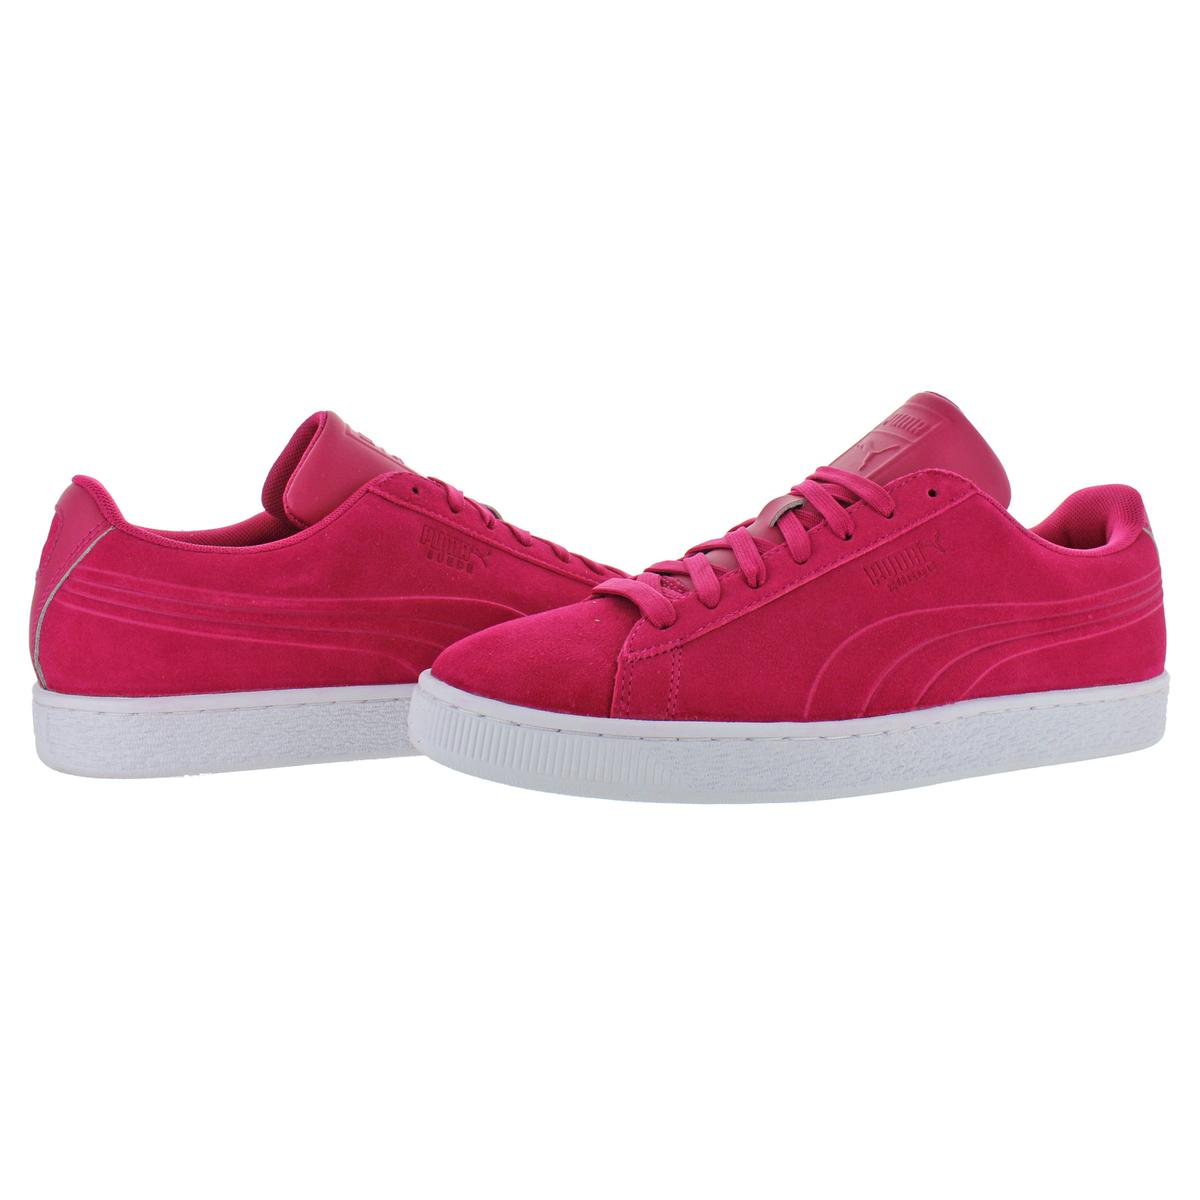 Puma-Suede-Classic-Men-039-s-Fashion-Sneakers-Shoes thumbnail 55